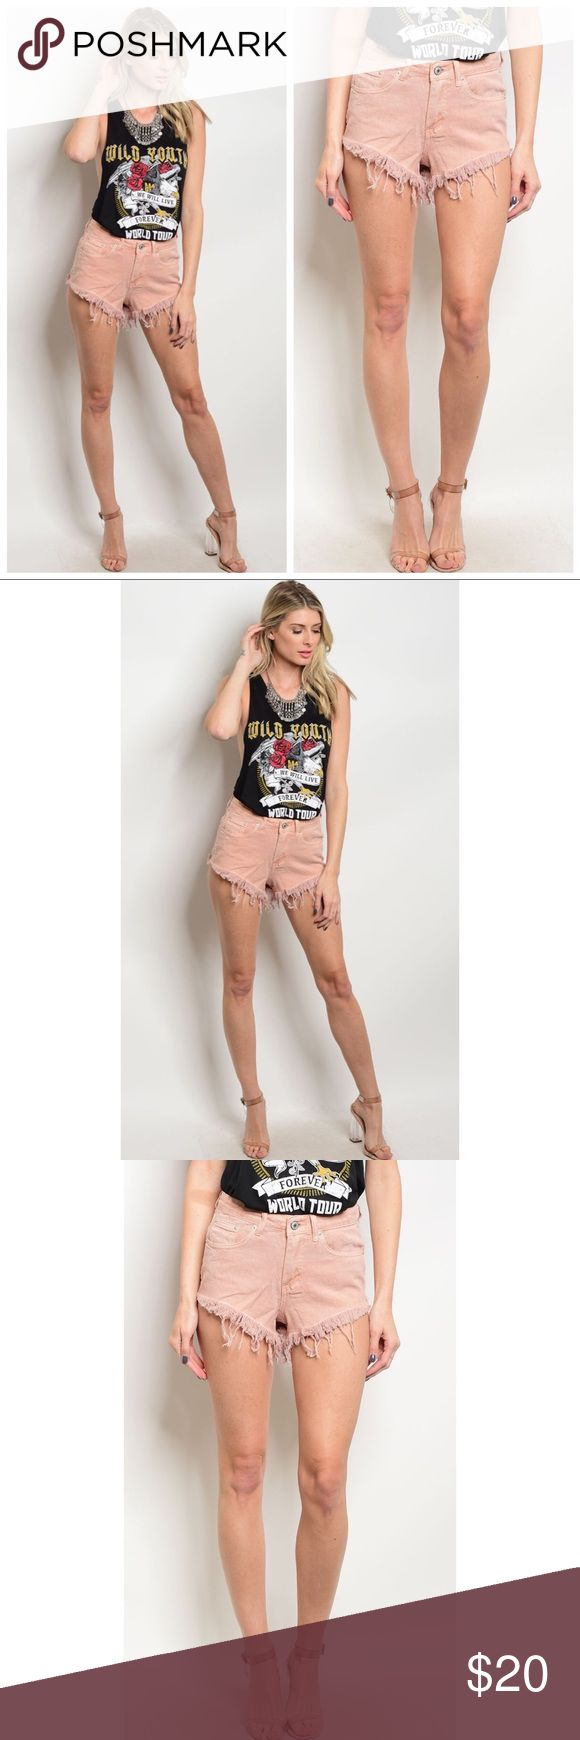 Pink Peach Jean Cutoff Shorts S M L Pink Peach Jean Cutoff Shorts, 100% Cotton. Available in size small, medium, or large. ARRIVING WEDNESDAY/SHIPPING THURSDAY!  No Trades, Price Firm unless Bundled.  BUNDLE 3 OR MORE ITEMS FOR 15 % OFF. Couture Gypsy Shorts Jean Shorts